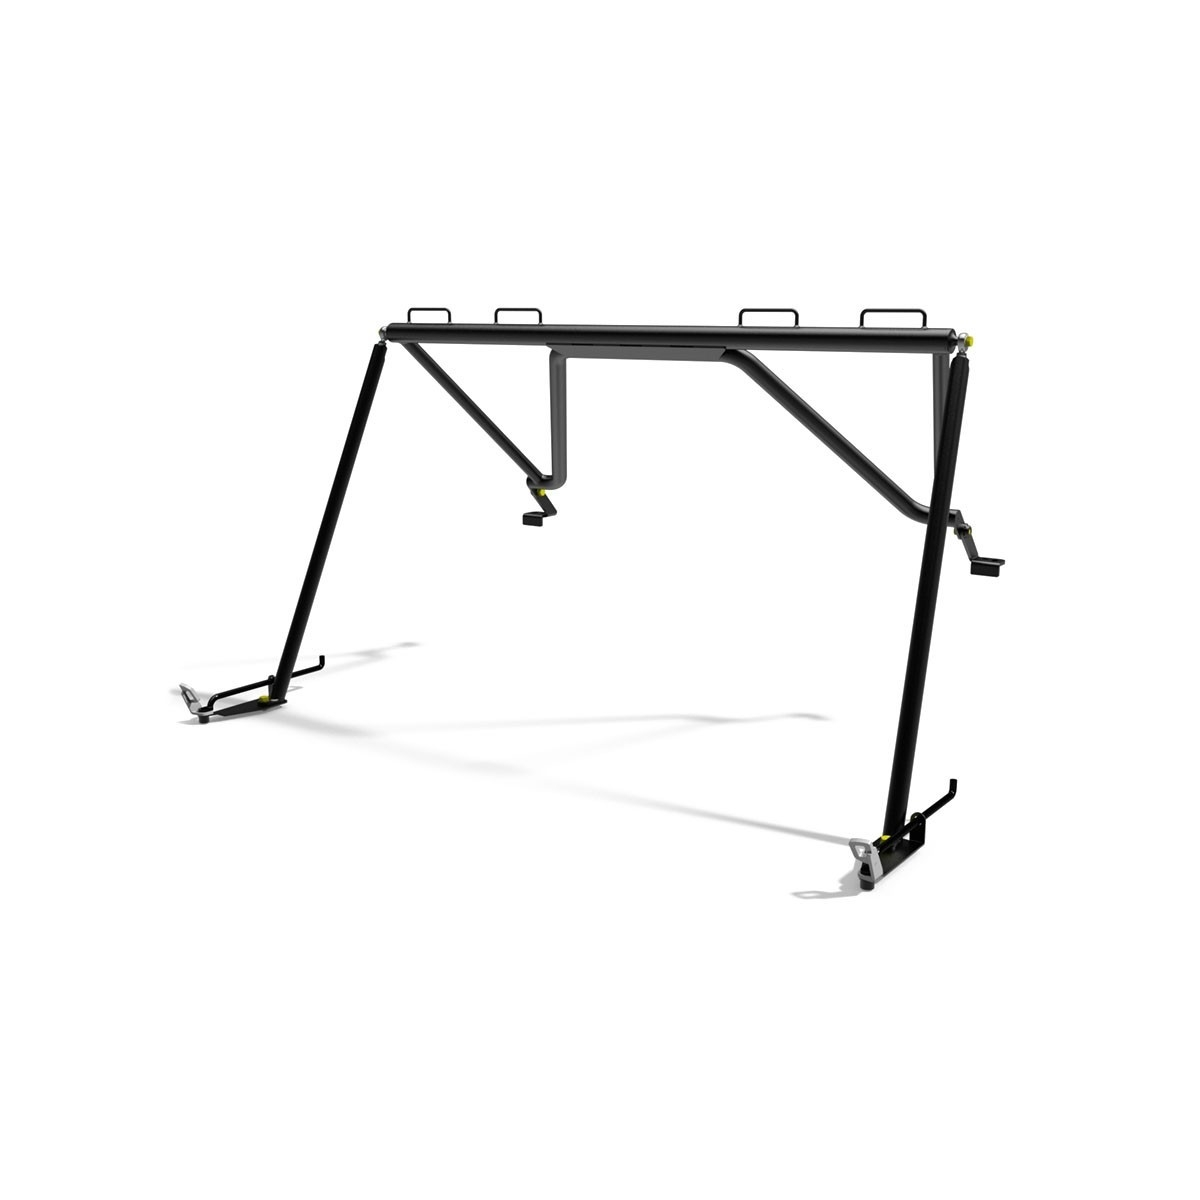 Brey Krause Harness Bar